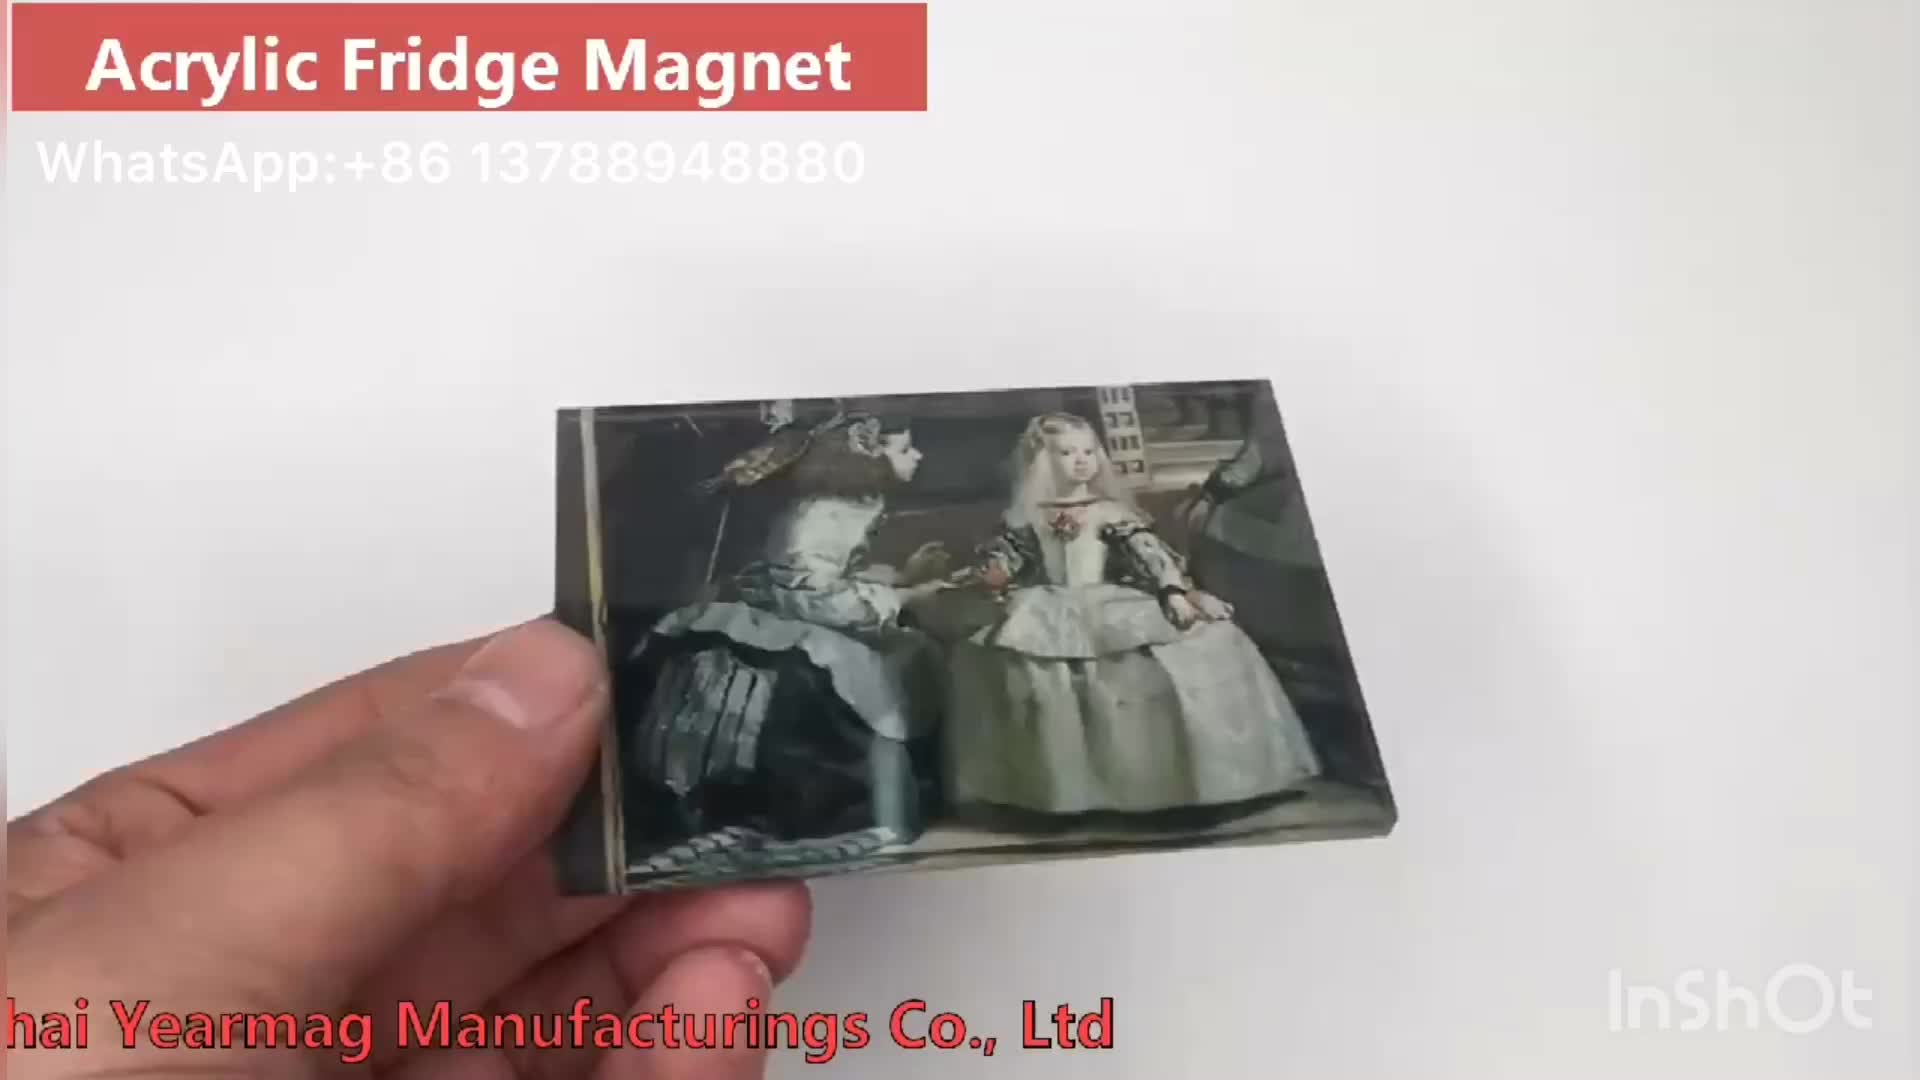 Custom made fridge magnet type acrylic photo frame on refrigerator